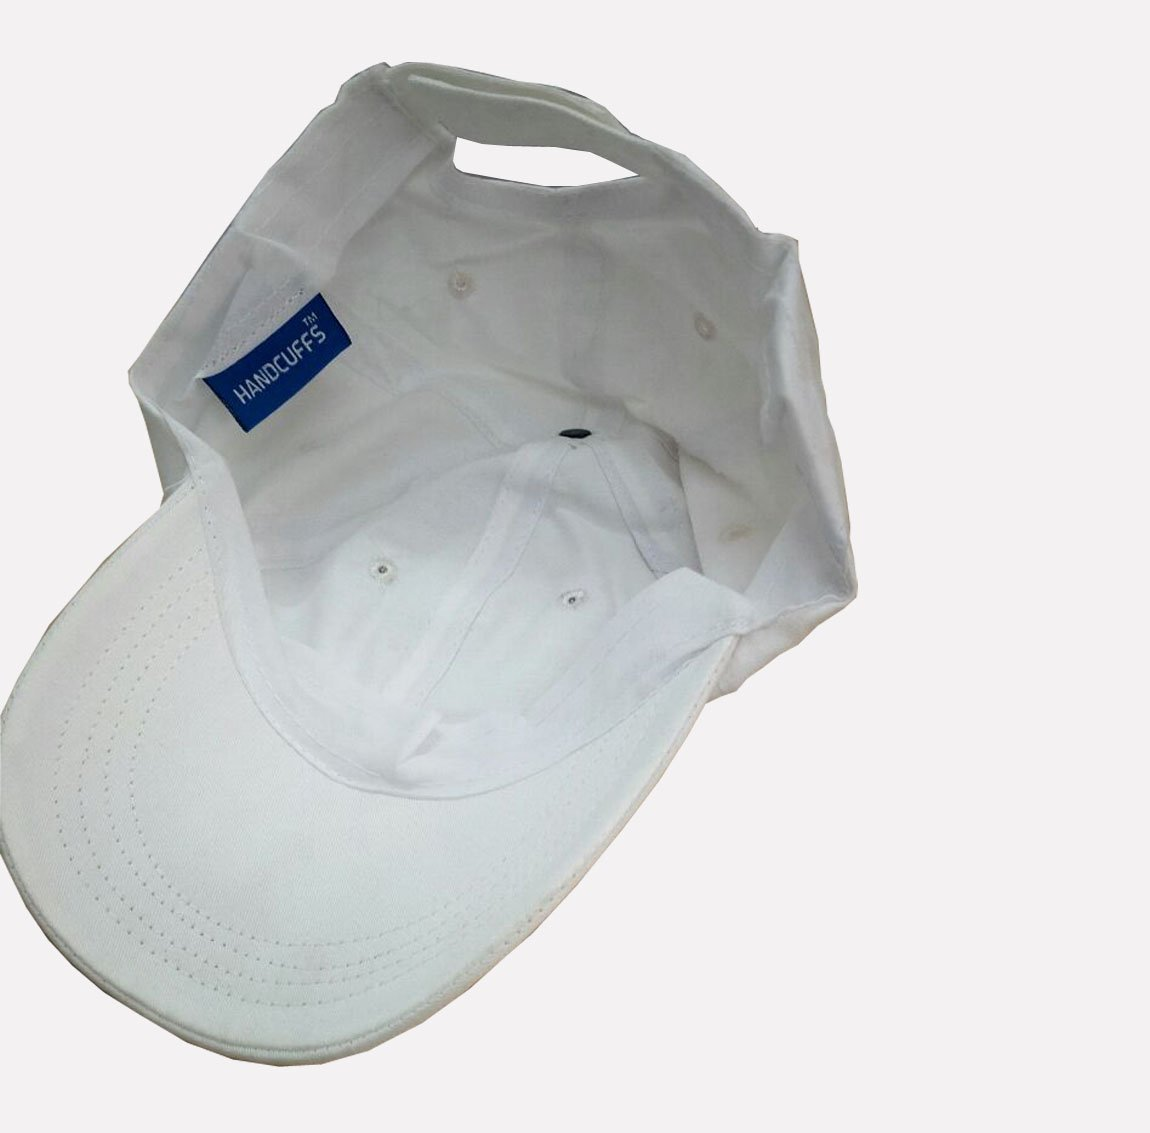 85eac02fa44627 Buy Handcuffs Elasticized-Fabric Cotton Adjustable Plain Baseball Cap  (White) Online at Low Prices in India - Amazon.in